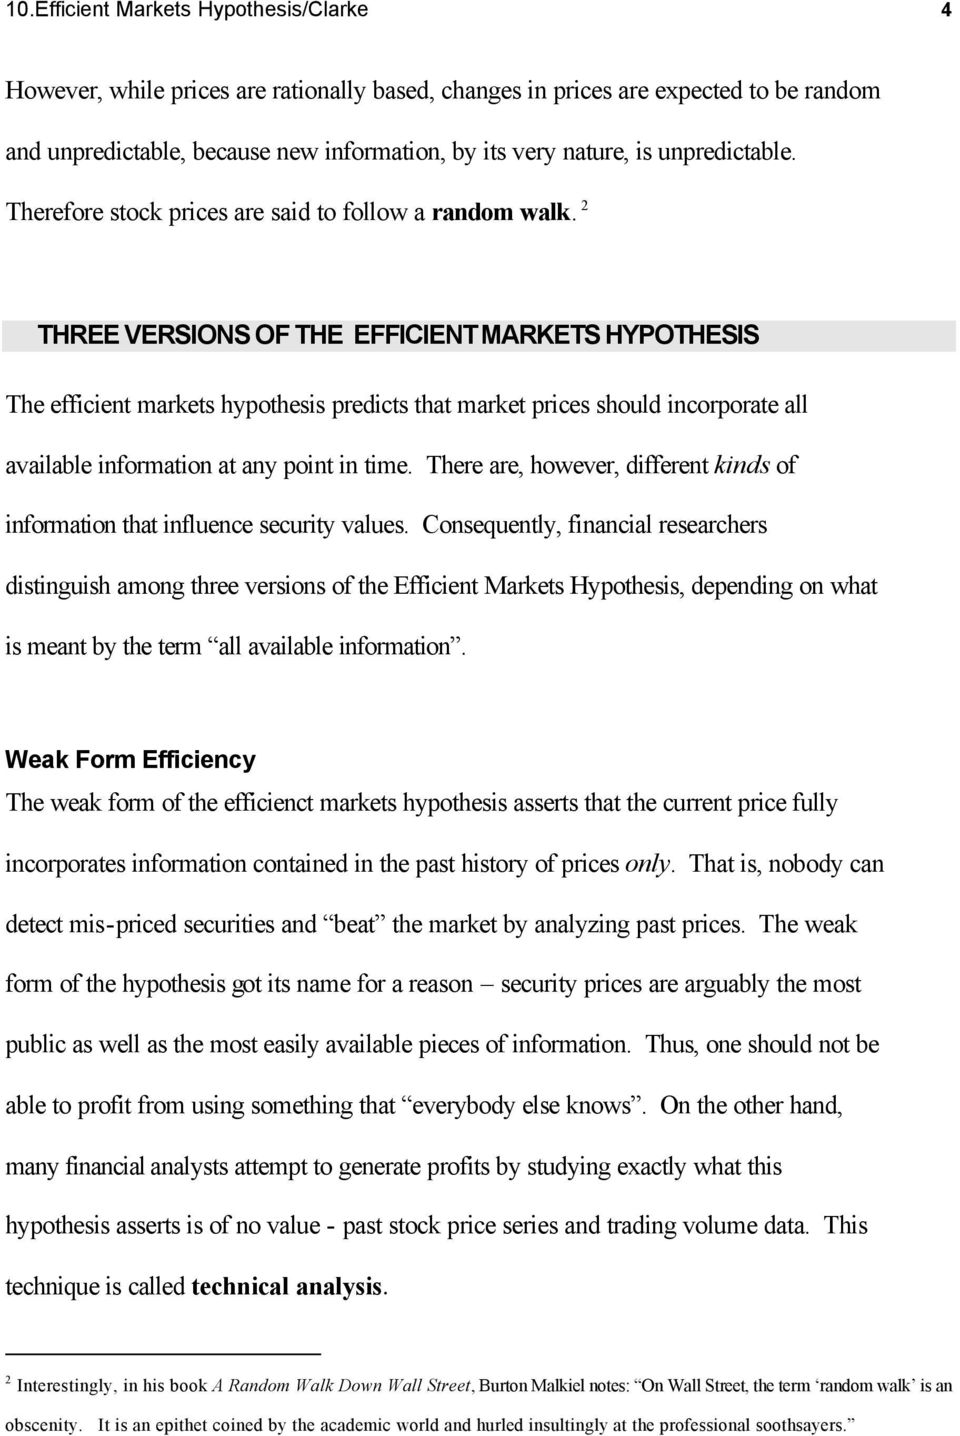 2 THREE VERSIONS OF THE EFFICIENT MARKETS HYPOTHESIS The efficient markets hypothesis predicts that market prices should incorporate all available information at any point in time.